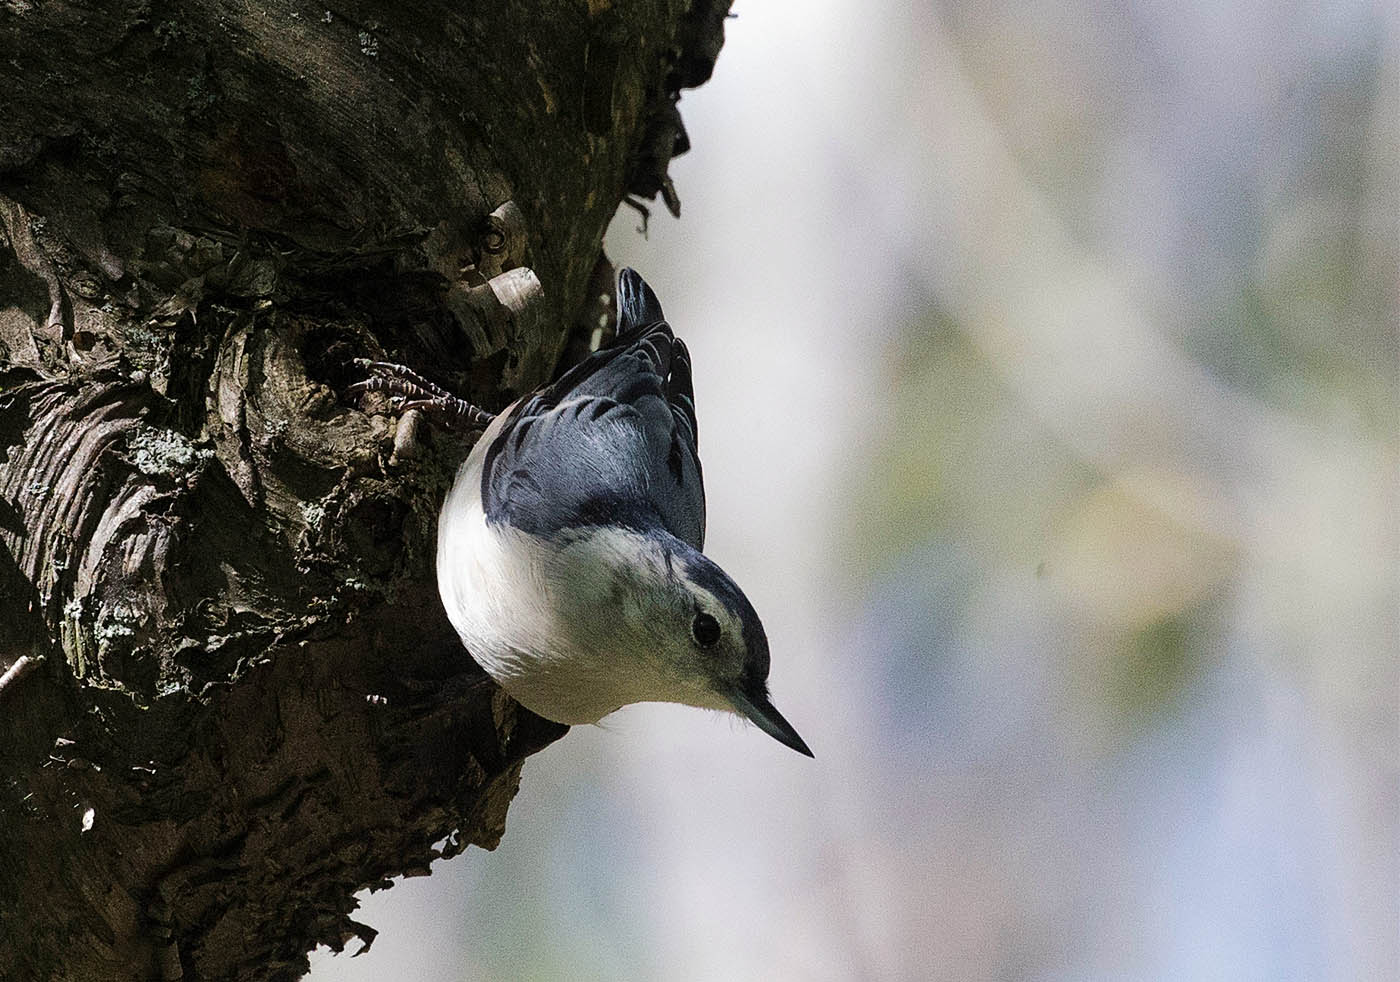 A White-breasted Nuthatch at Stiglmeier Park, in Cheektowaga , N.Y. on Wednesday Sept. 21, 2016.   (John Hickey/Buffalo News)